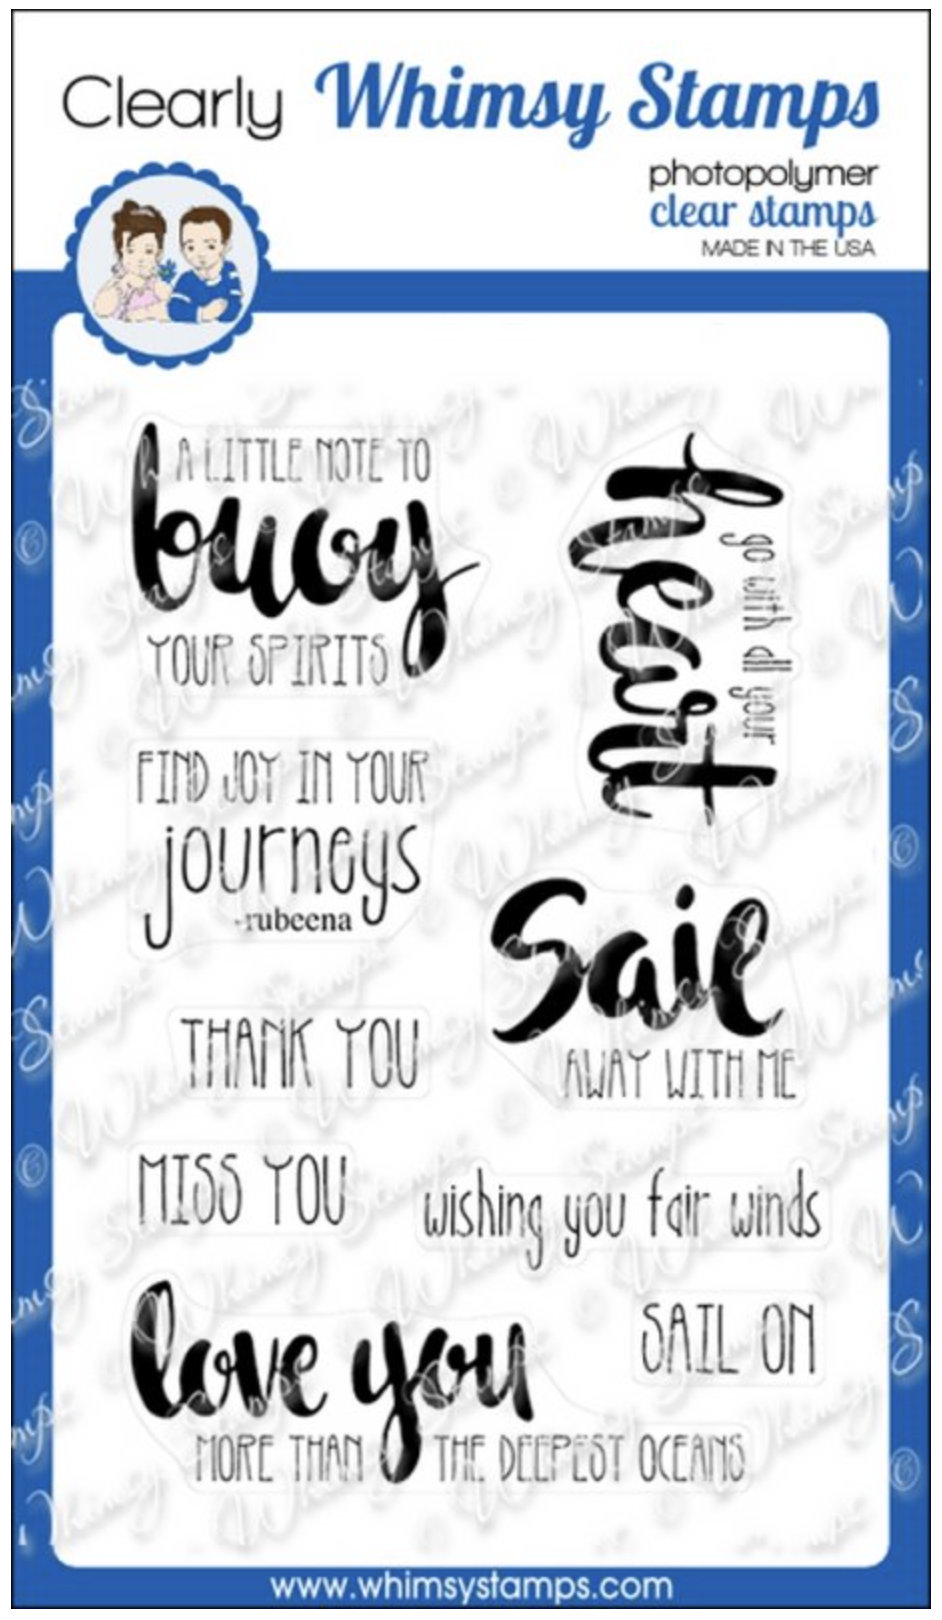 whimsystamps_3